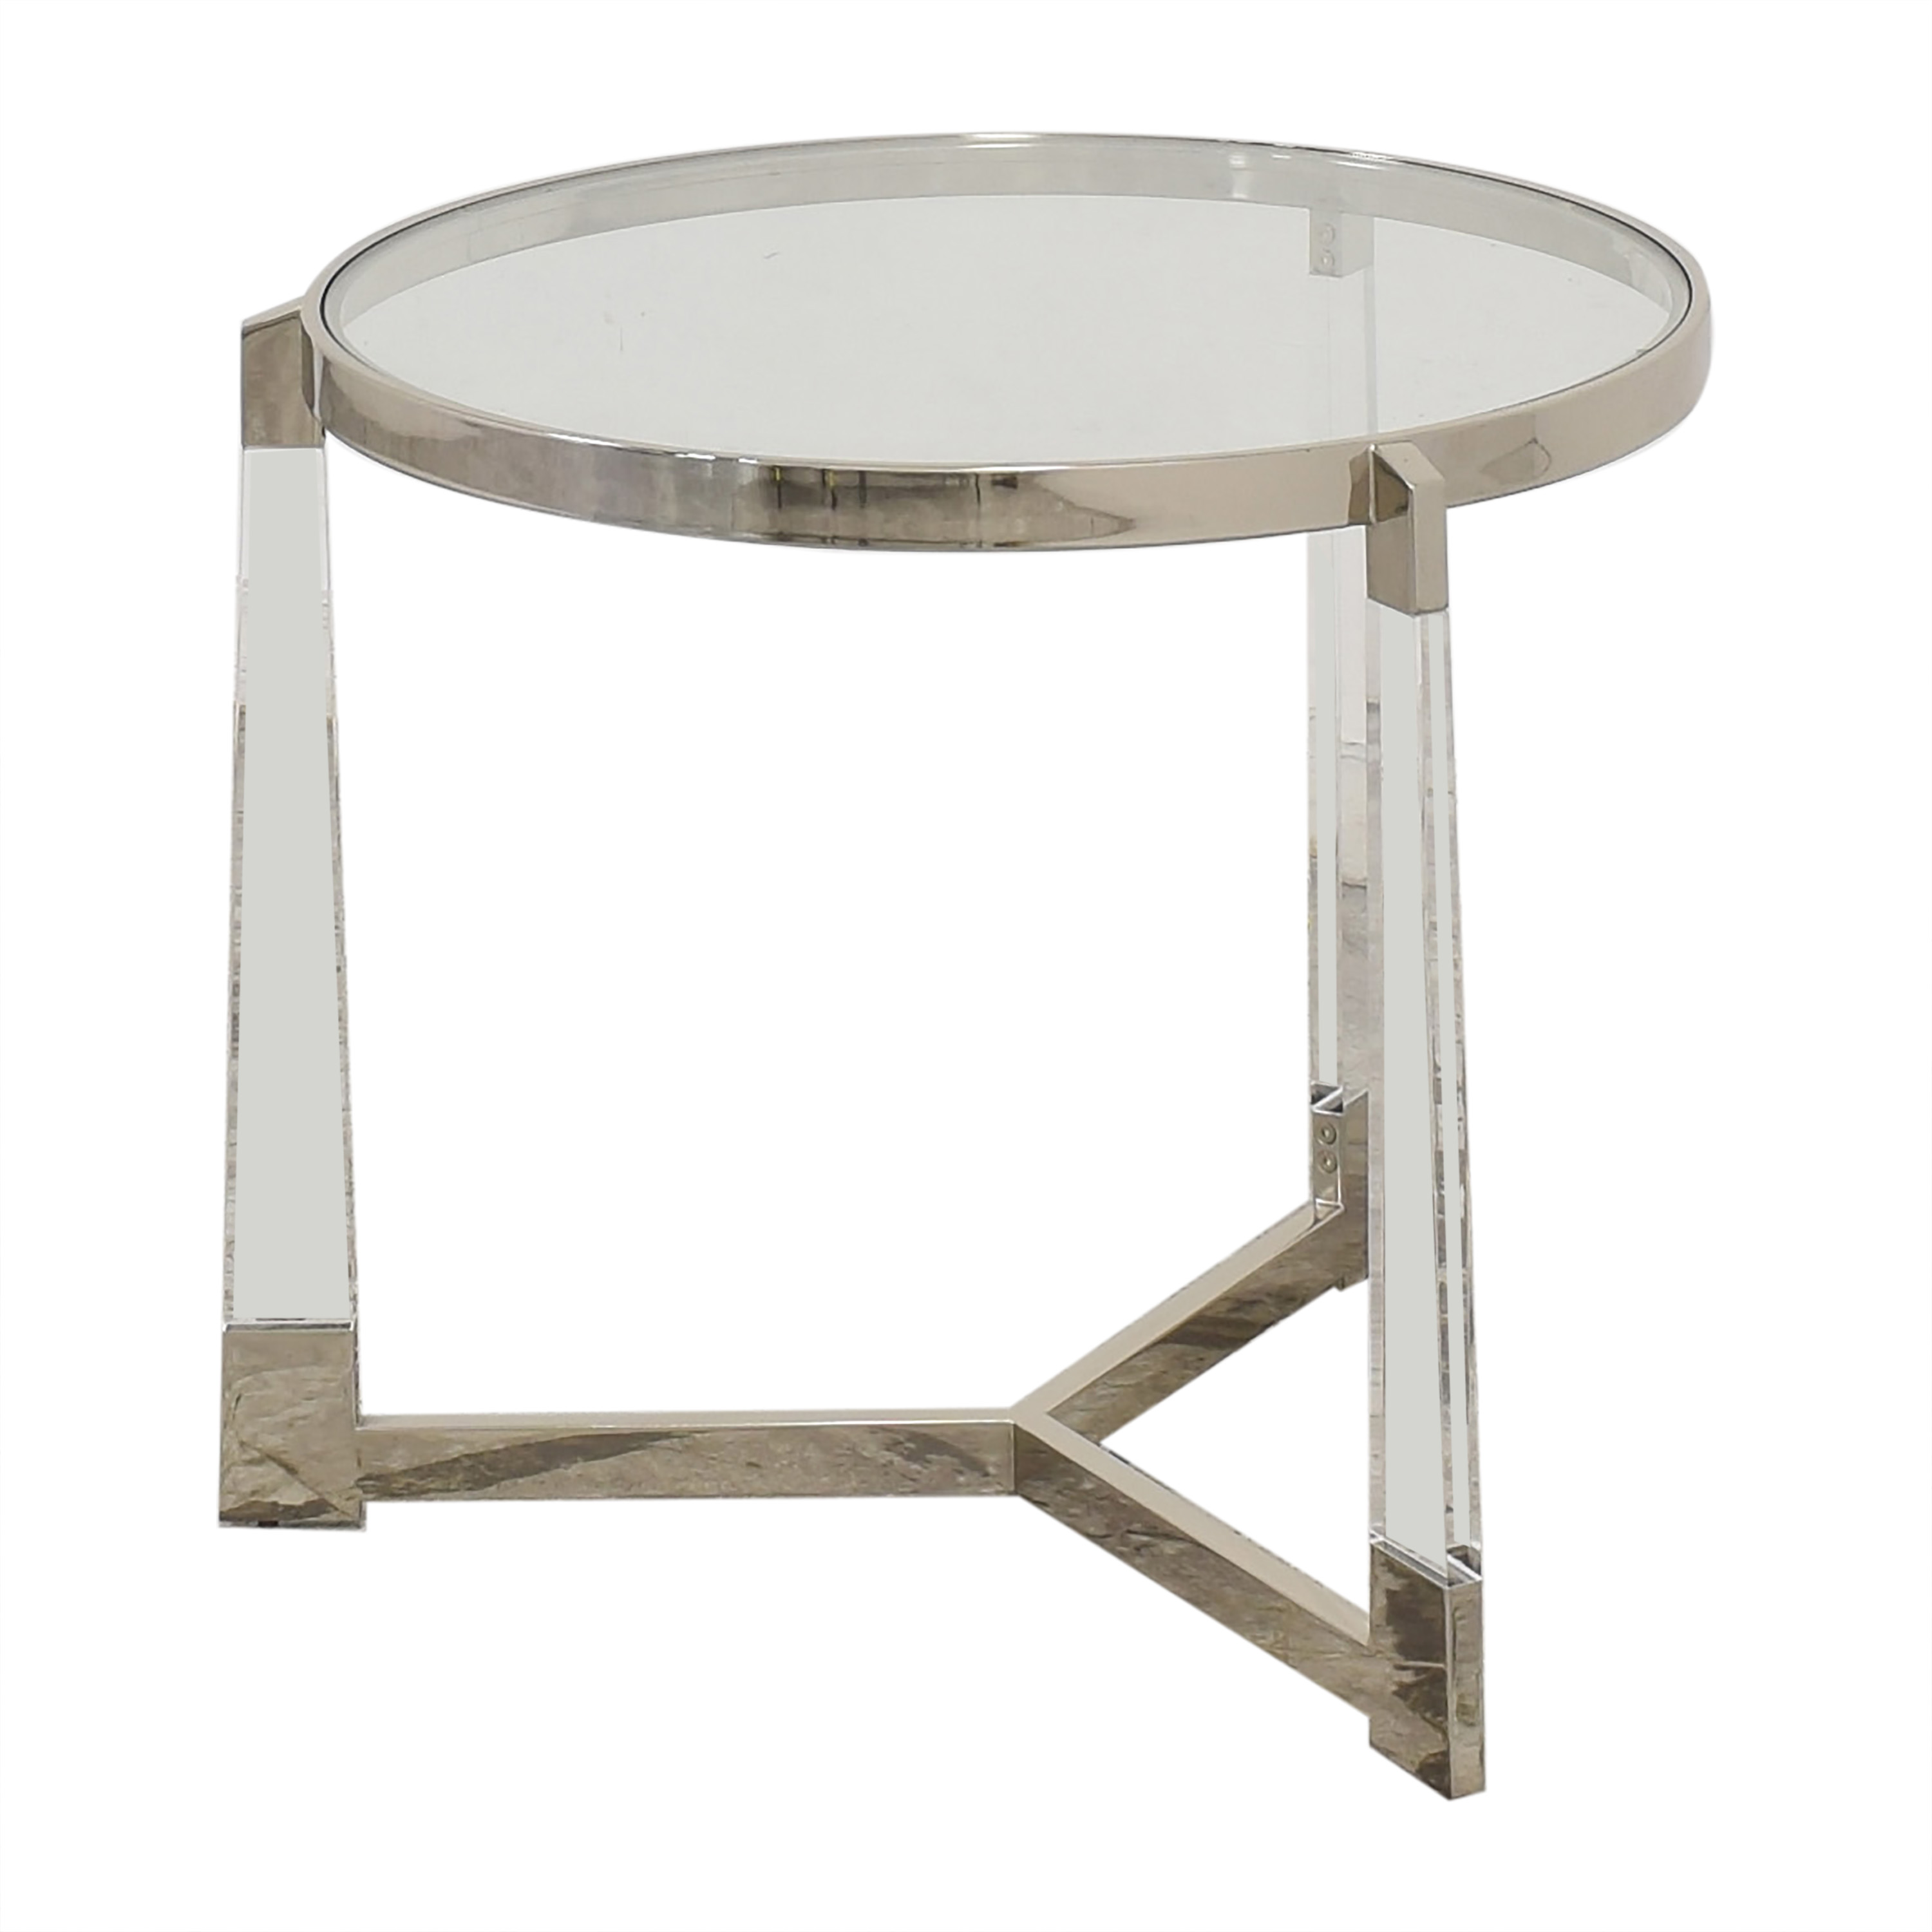 Round Side Table with Transparent Surface